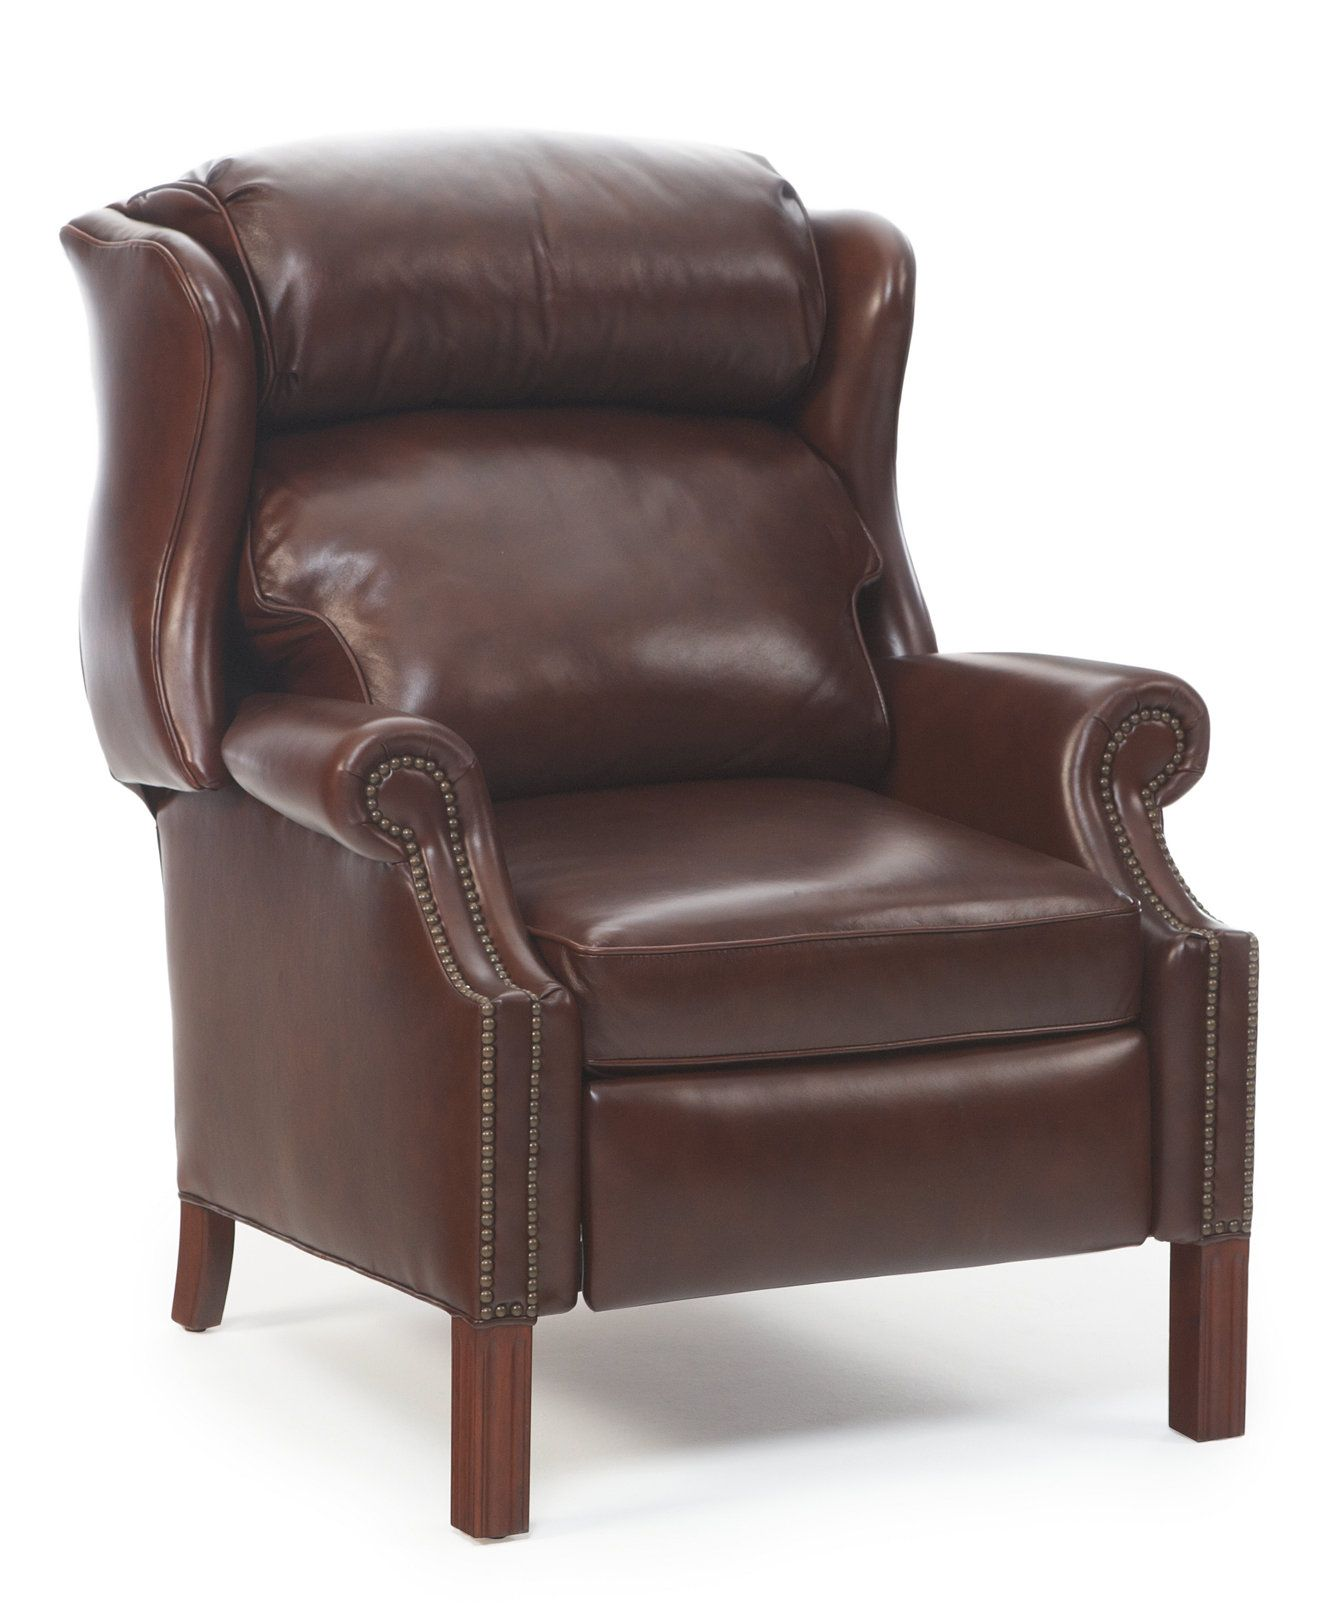 Kennedy Leather Recliner Recliners Furniture Macy s